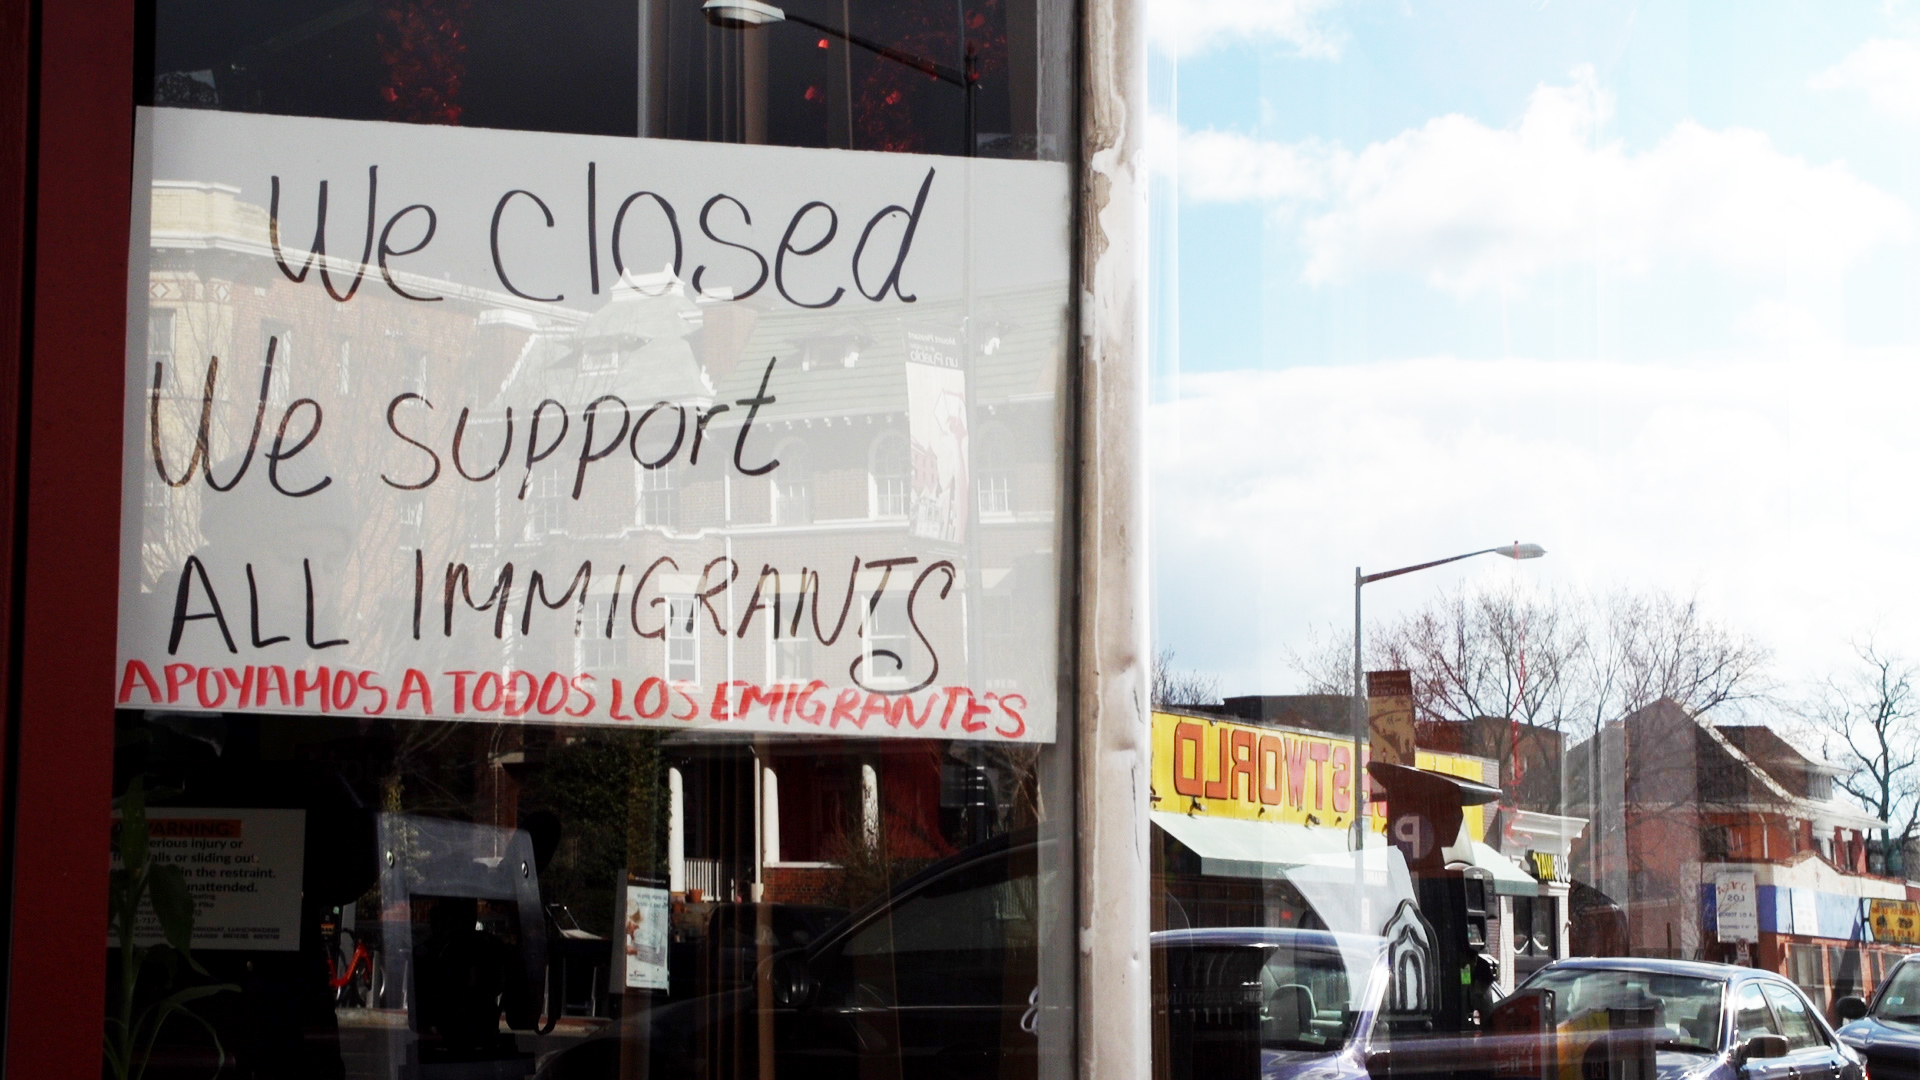 Federal immigration raids net many without criminal records, sowing fear